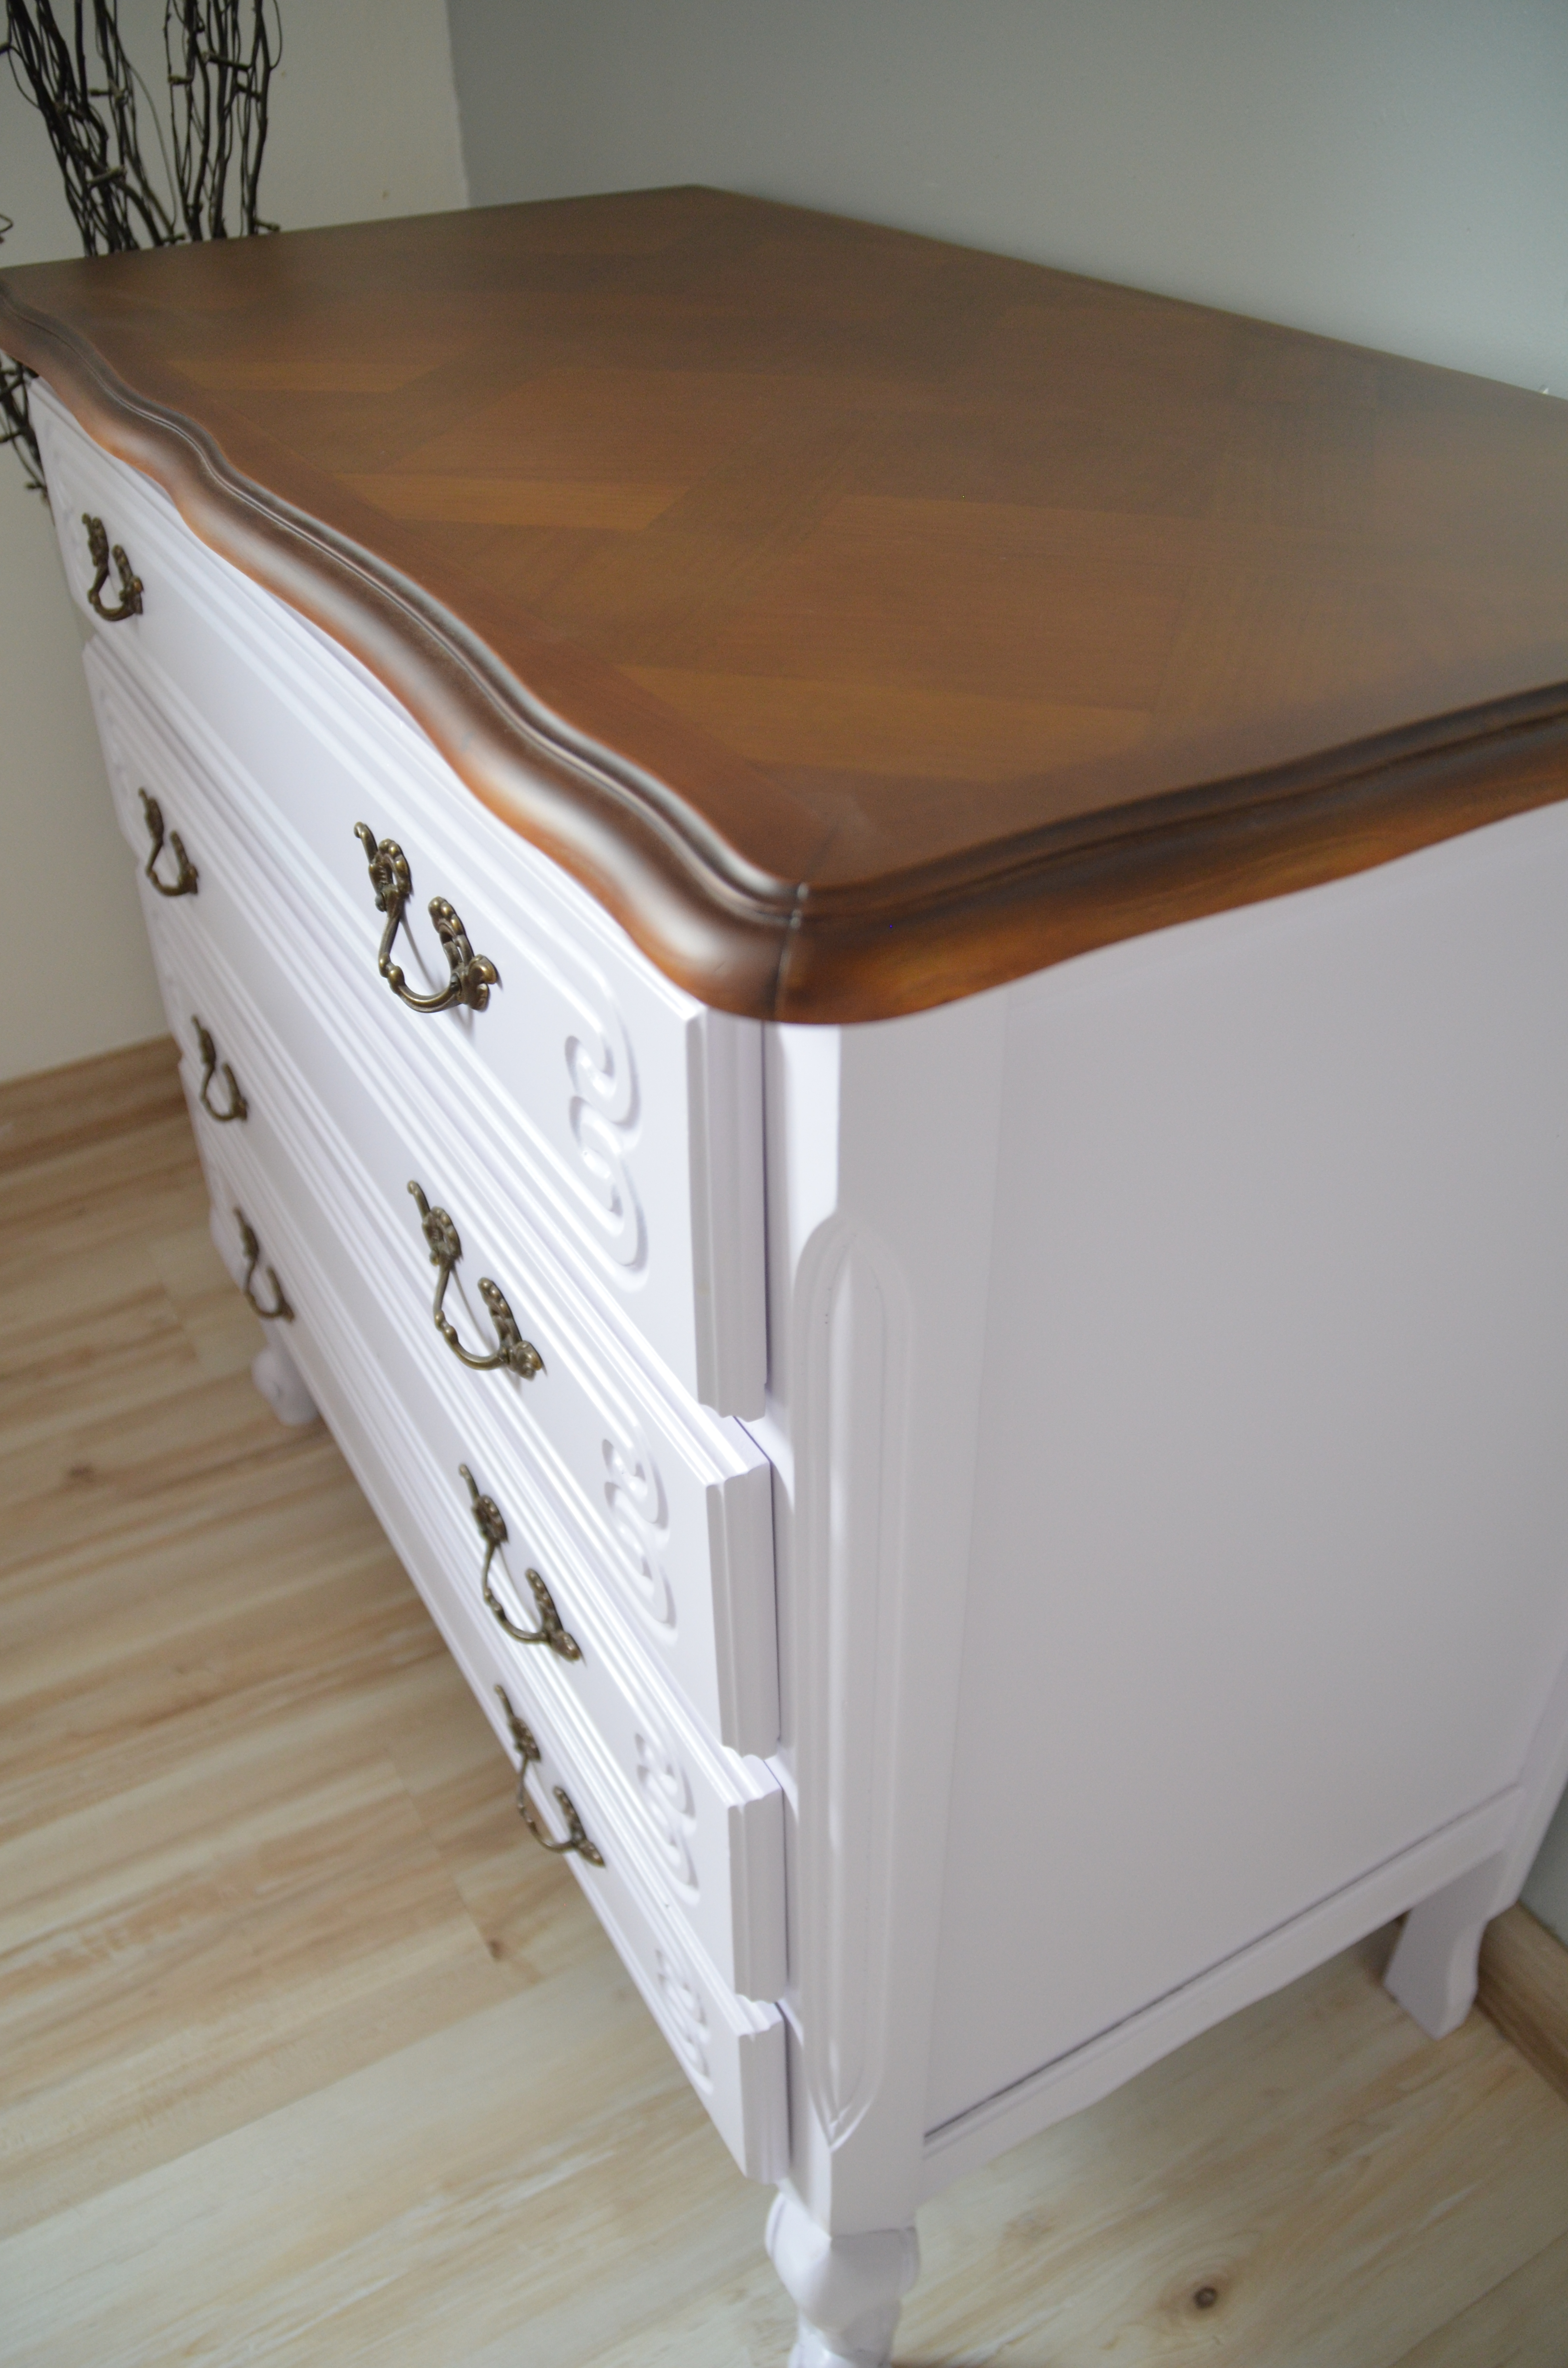 COMMODE RELOOKEE